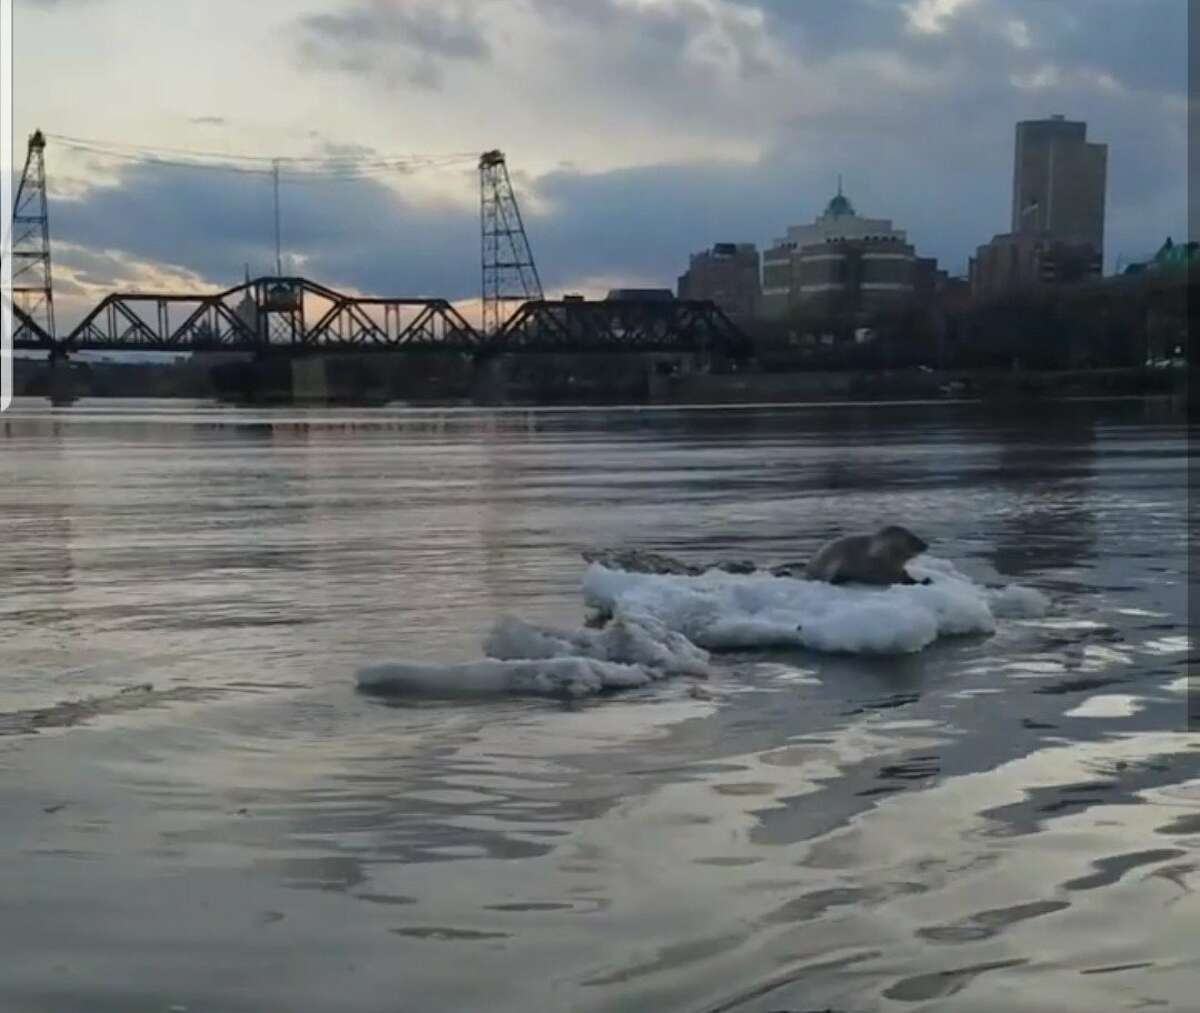 The harp seal was spotted on an ice floe Monday, March 18, 2019, on the Hudson River in Albany, according to the state Department of Environmental Conservation.